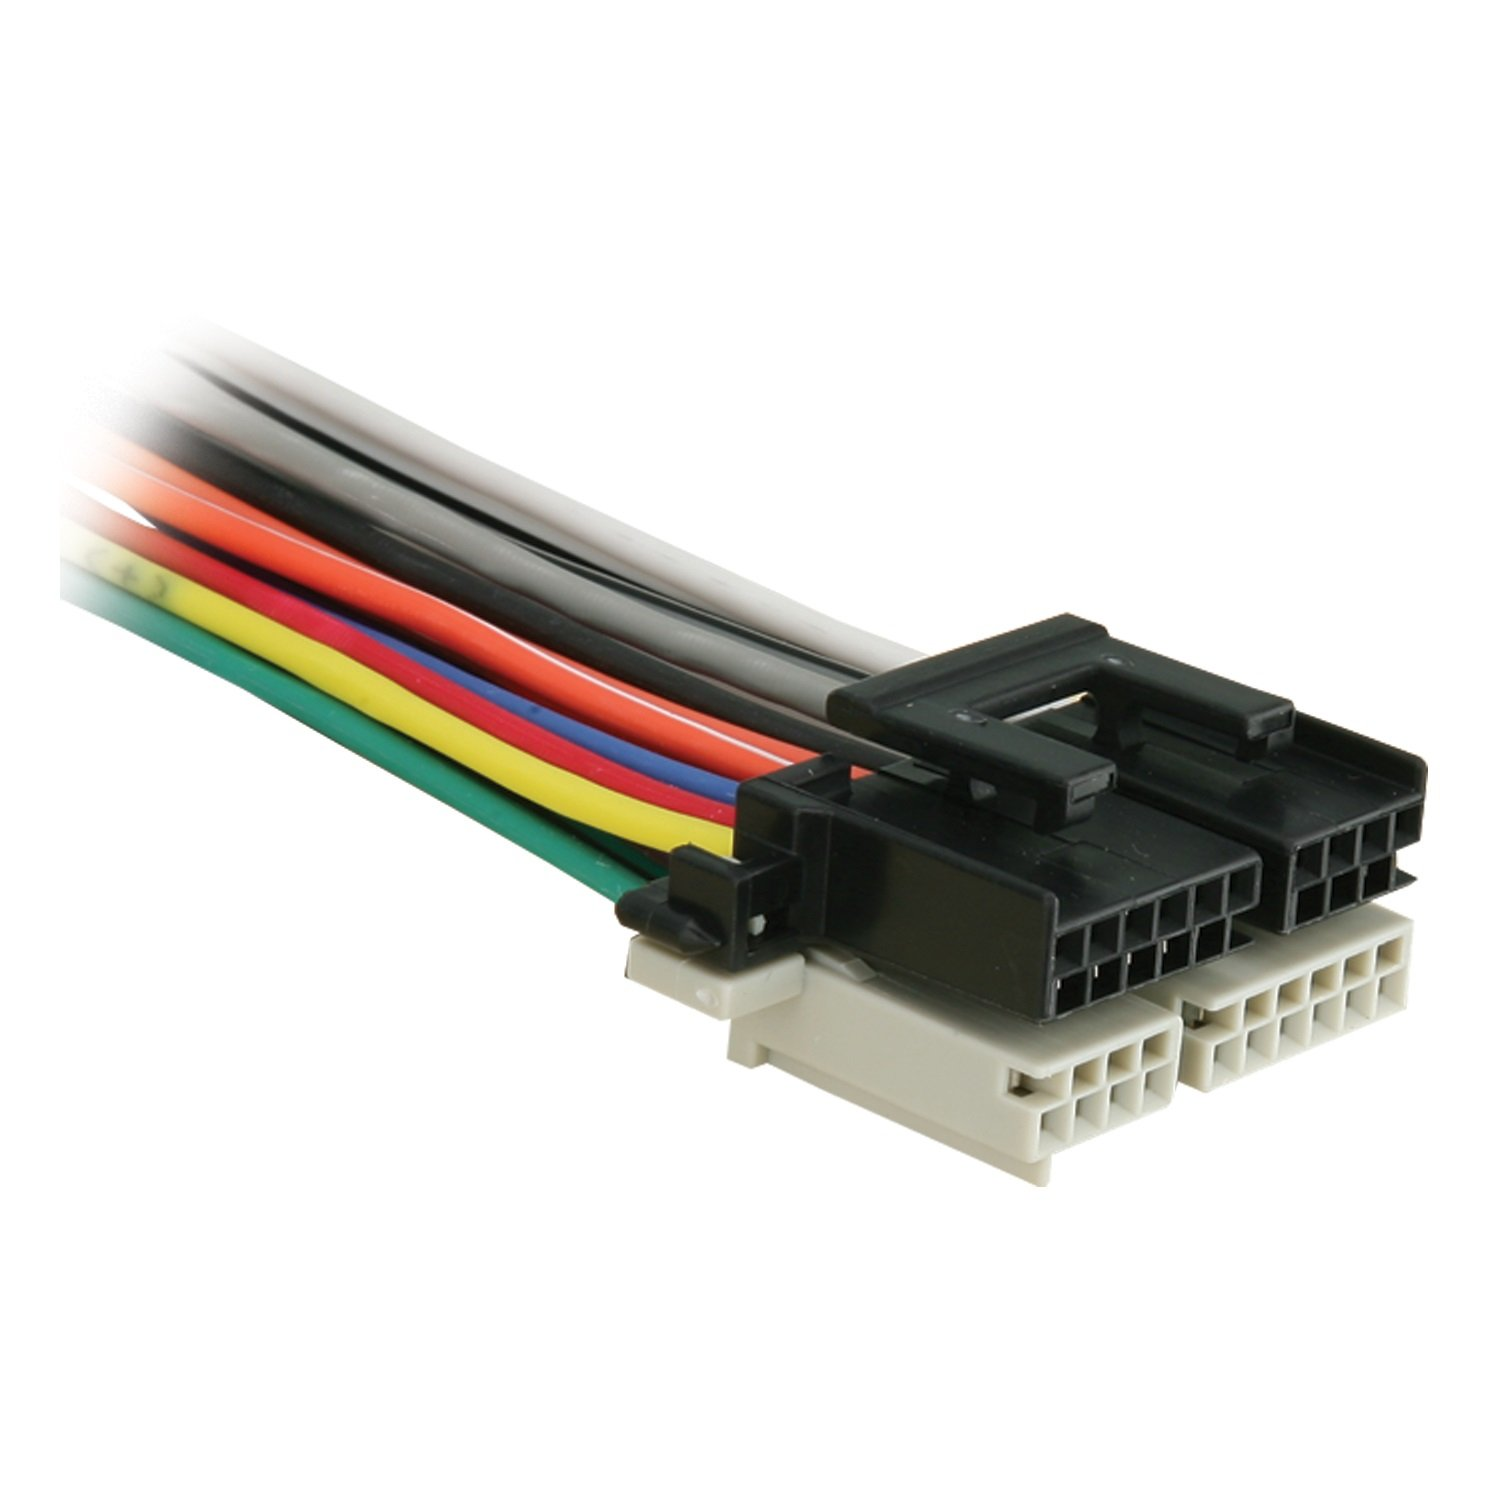 61 L9yWmnpL._SL1500_ amazon com metra reverse wiring harness 71 1858 1 for select 1988 70-1858 wiring harness at bayanpartner.co